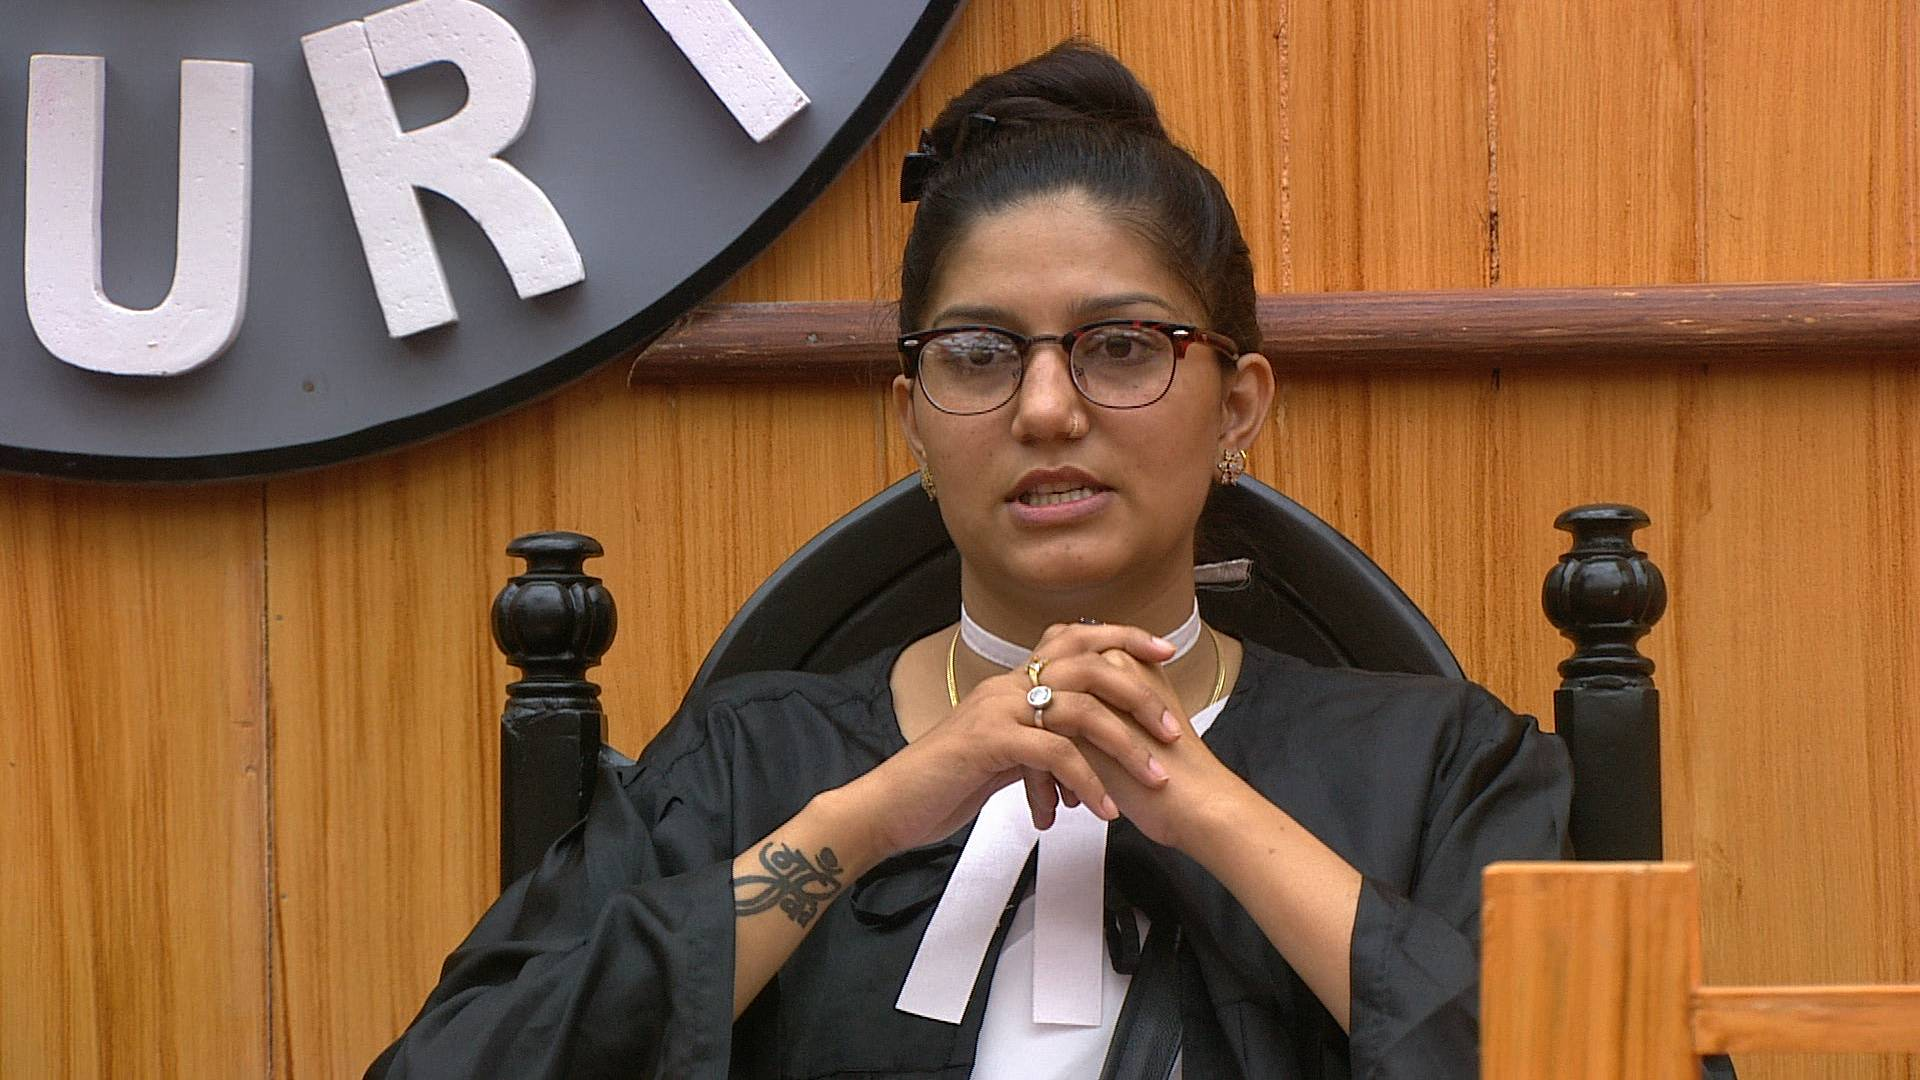 Will Sapna sacrifice her duties as a lawyer for her friends?